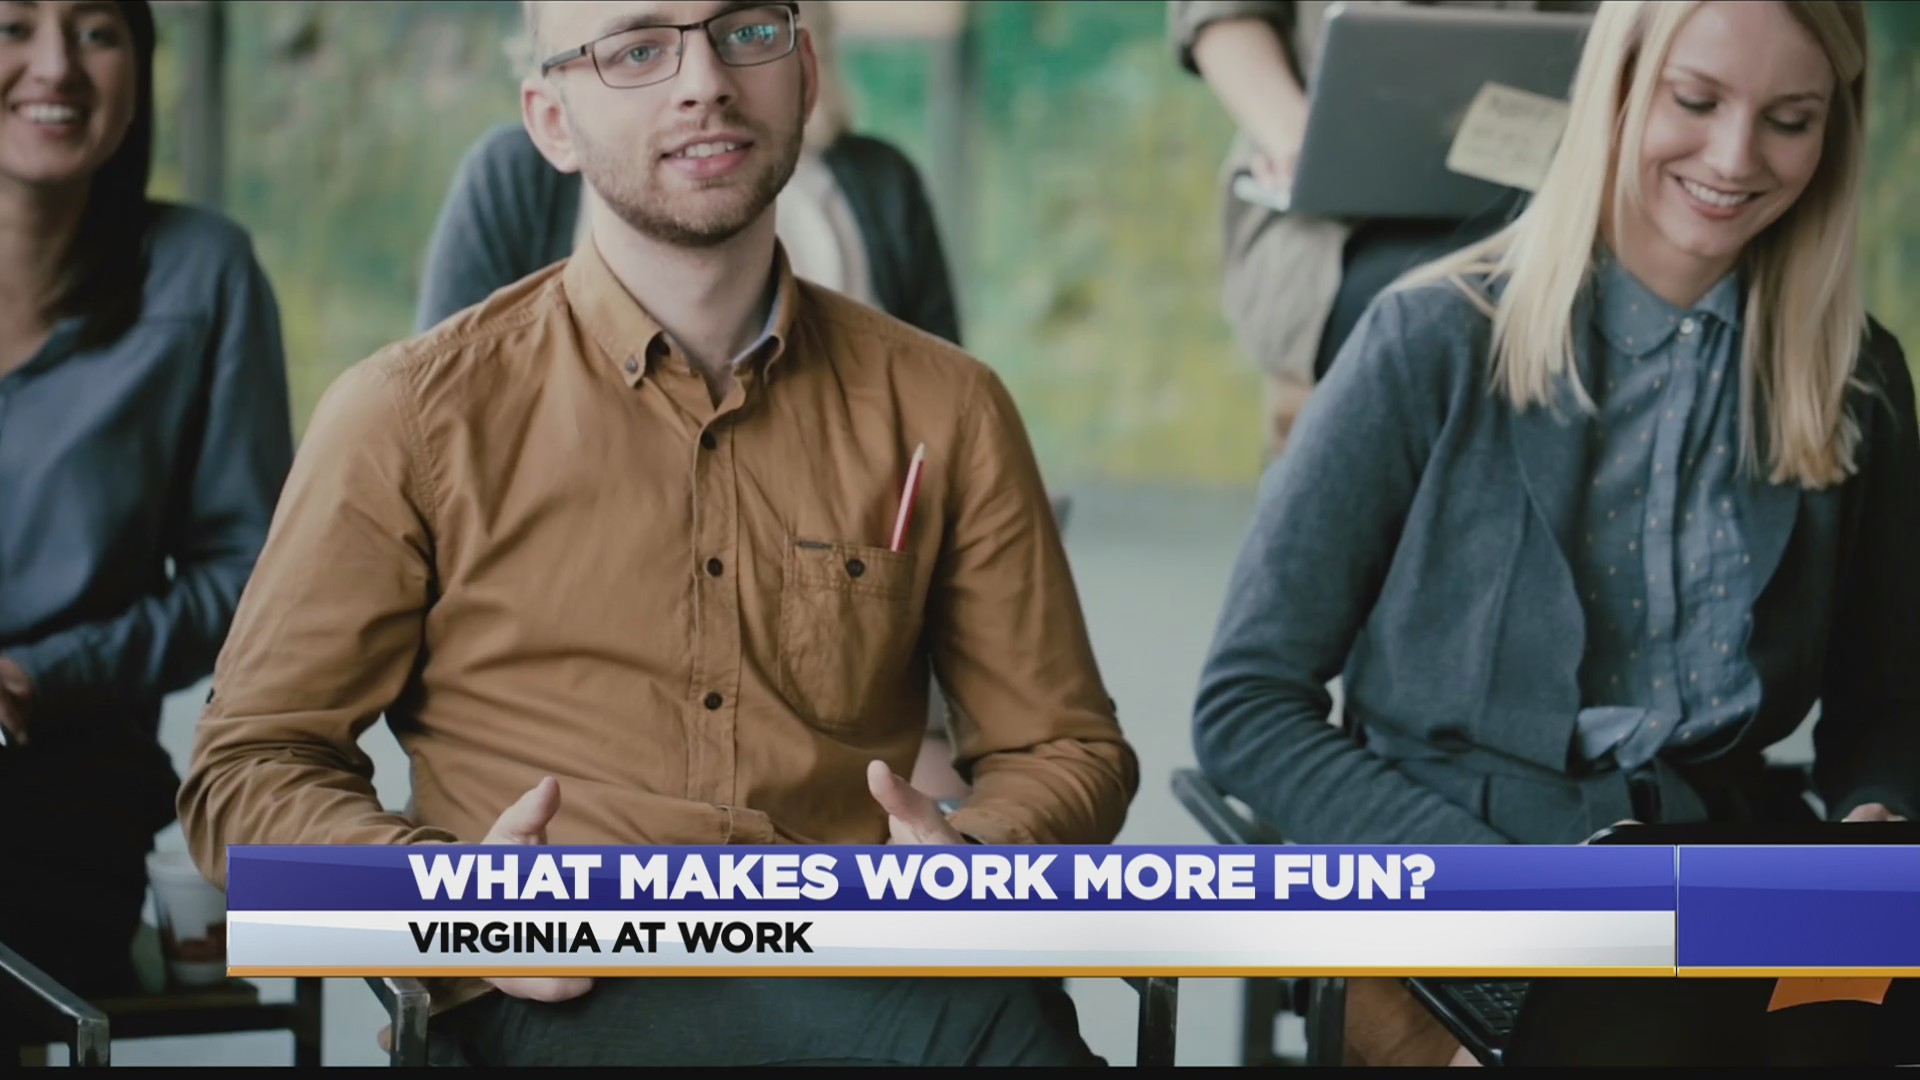 Virginia At Work: How to make work more fun